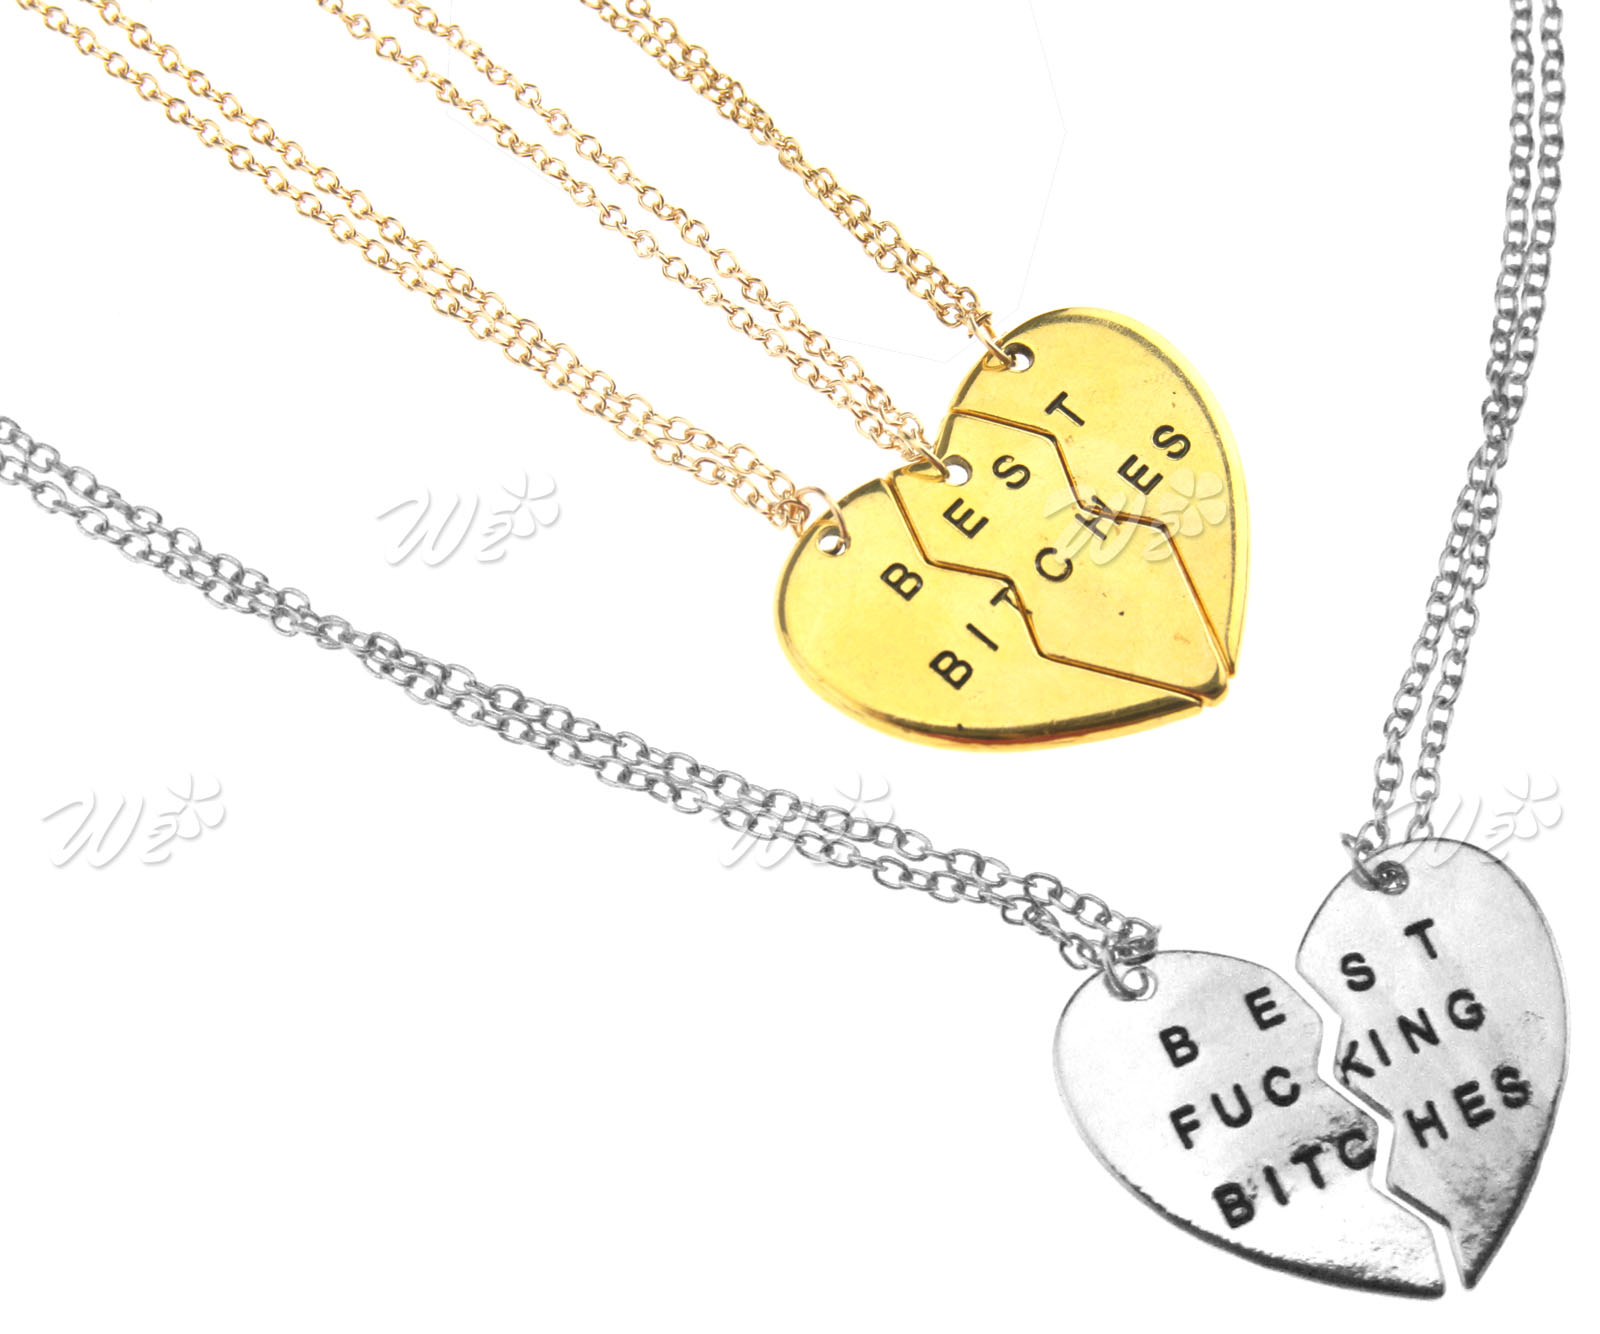 Combination Necklace 3/2 Parts Broken Heart Chain Necklace Gifts ...